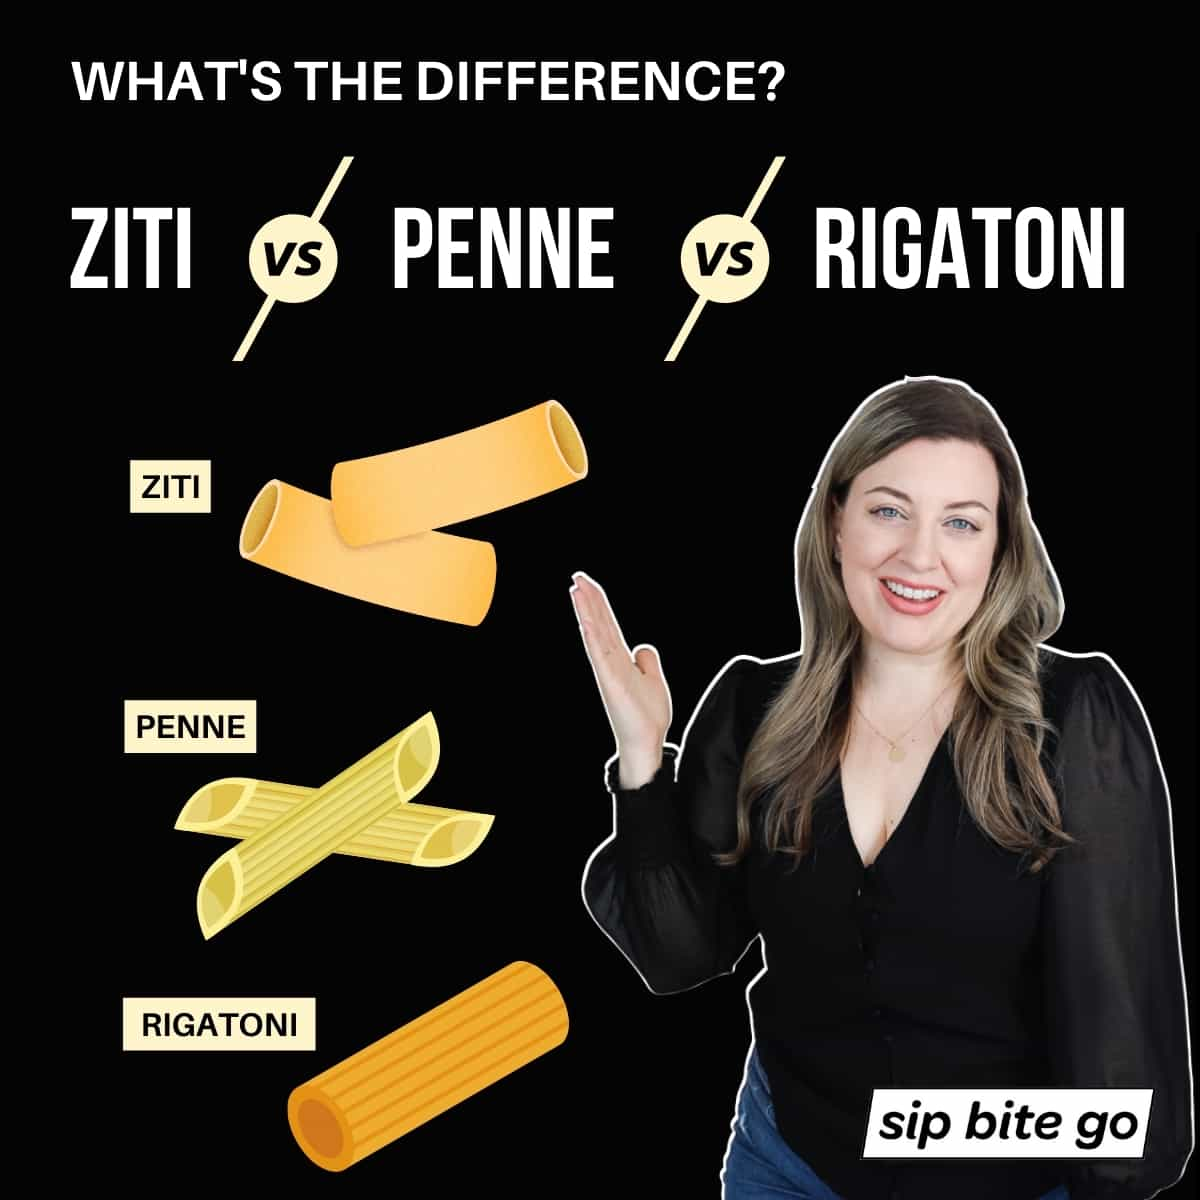 Infographic chart demonstrating what's the difference between ziti penne and rigatoni Sip Bite Go pasta shapes